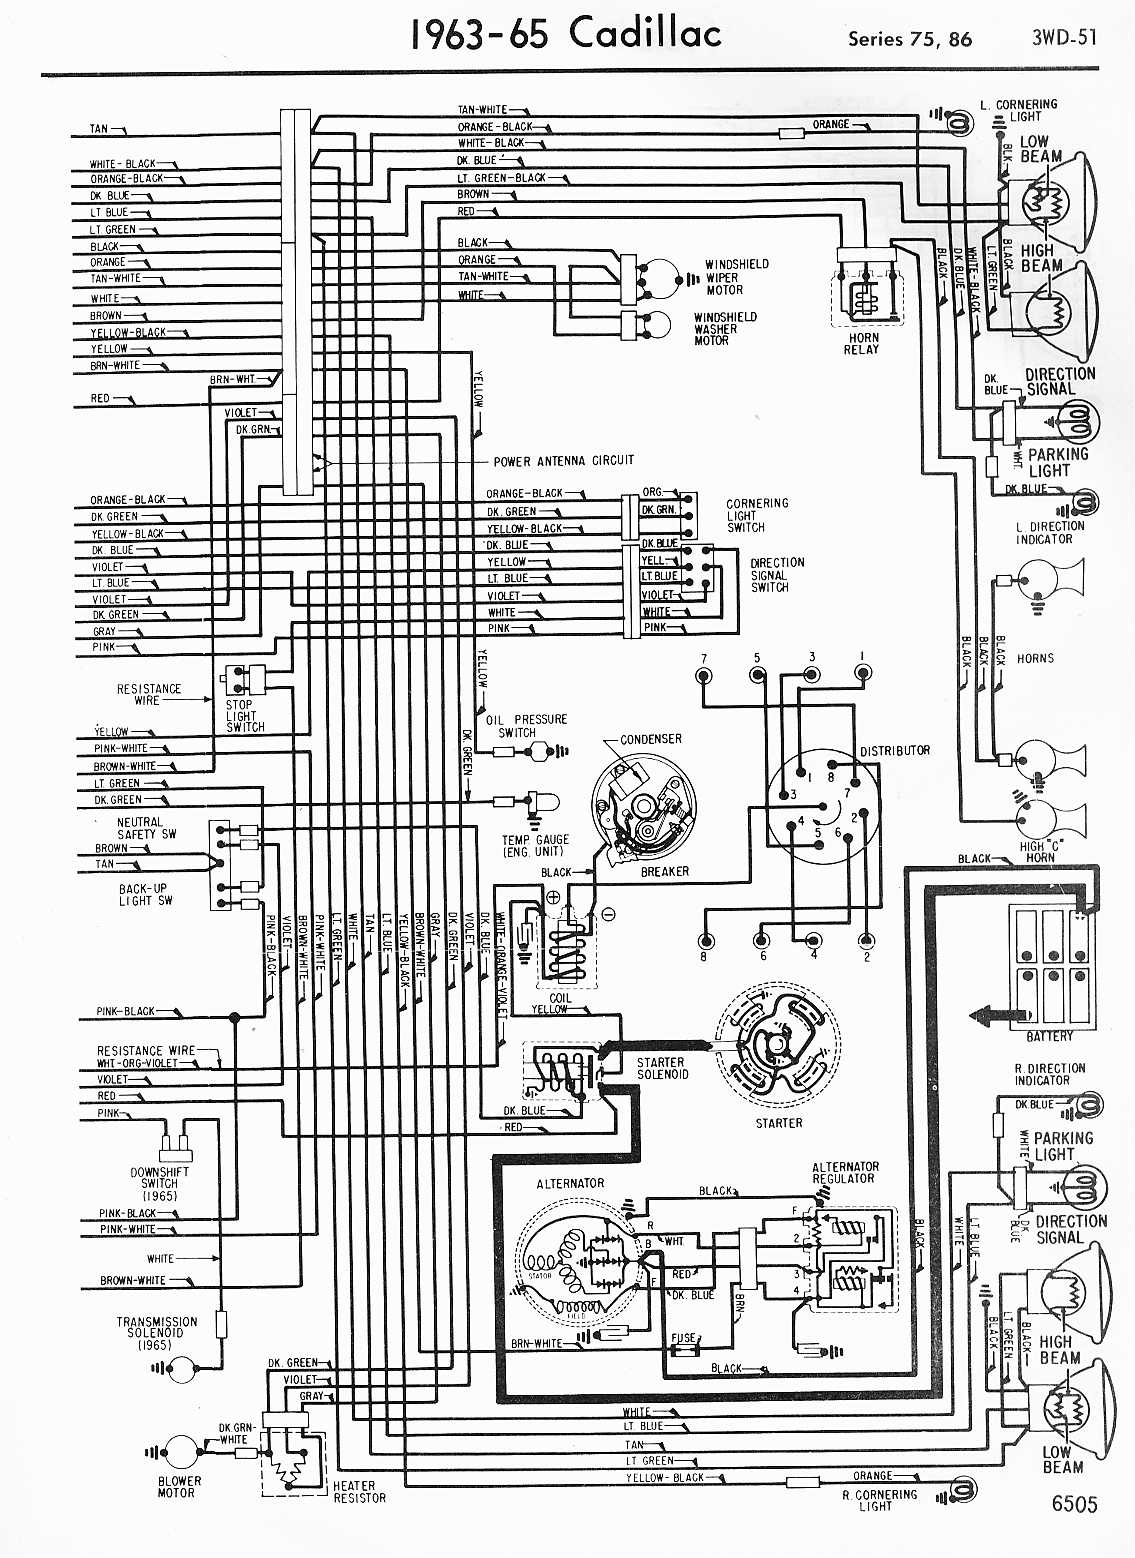 1960 Buick Wiring Diagram Great Design Of 2003 Rendezvous Stereo 1964 Cadillac Fleetwood Passenger Seat All Quit Working Regal